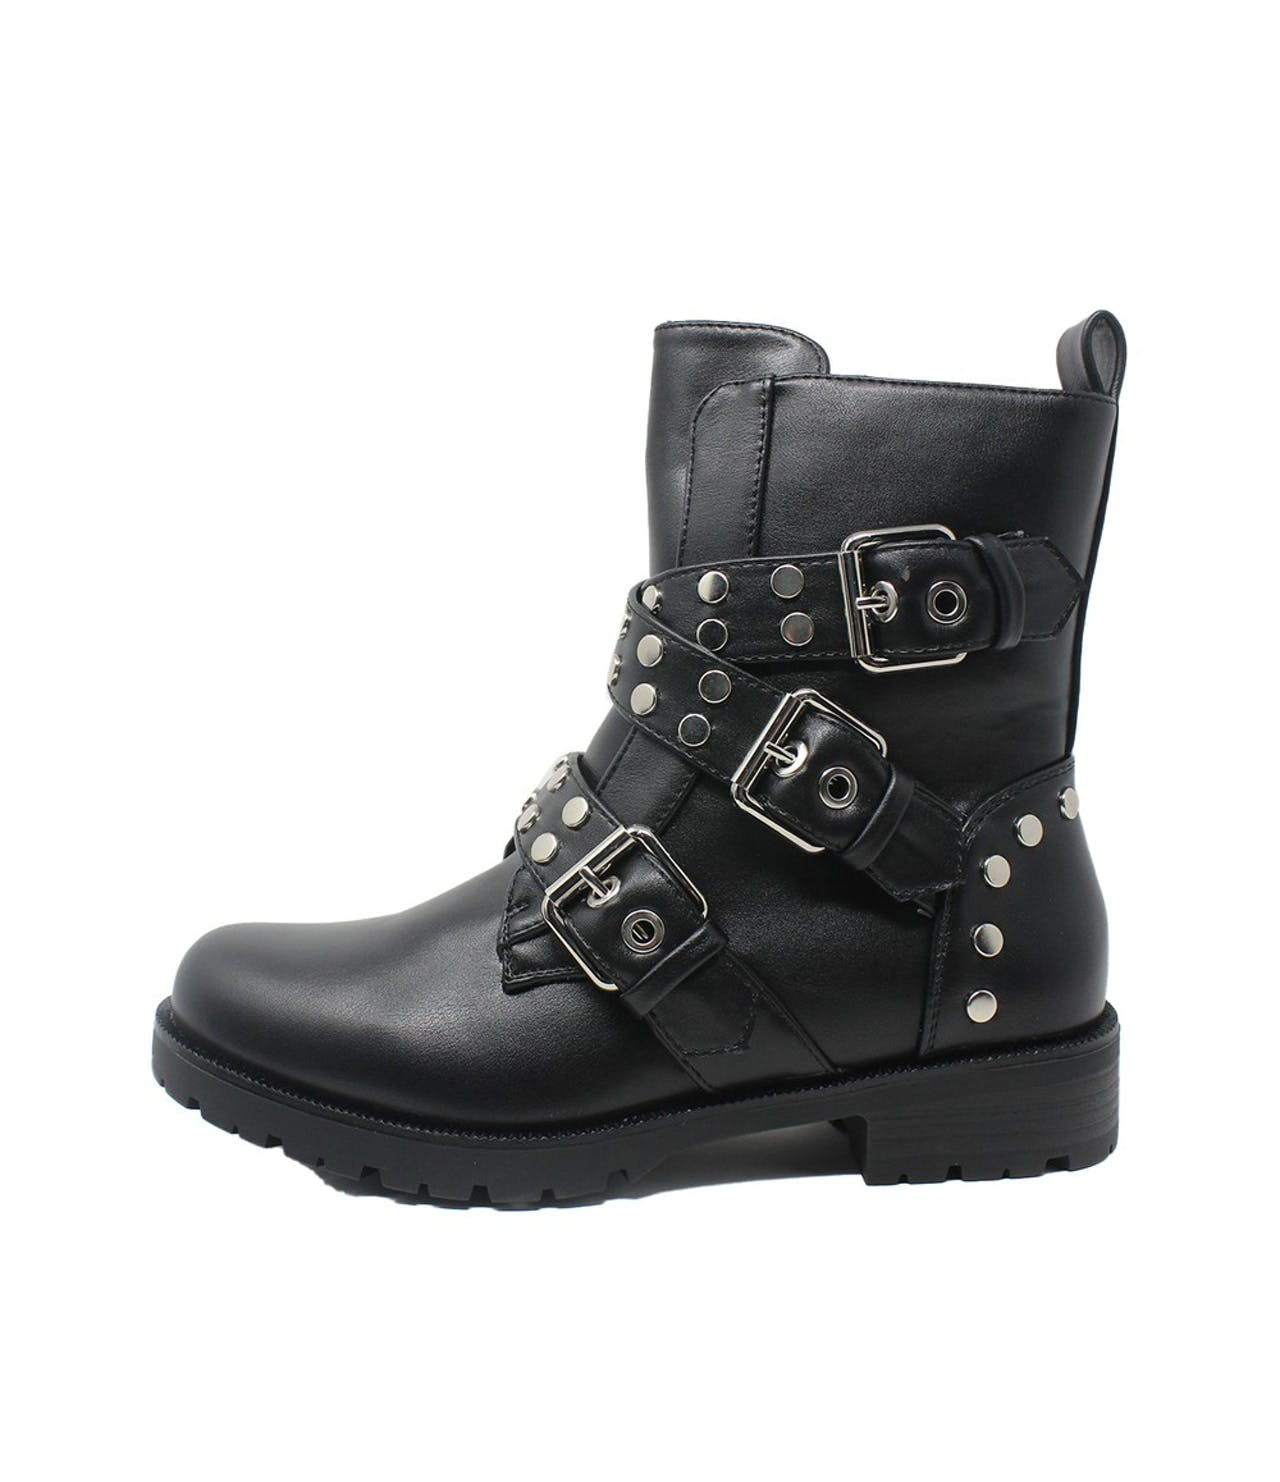 Shoe Lounge Black Faux Leather Boots with Studded Straps